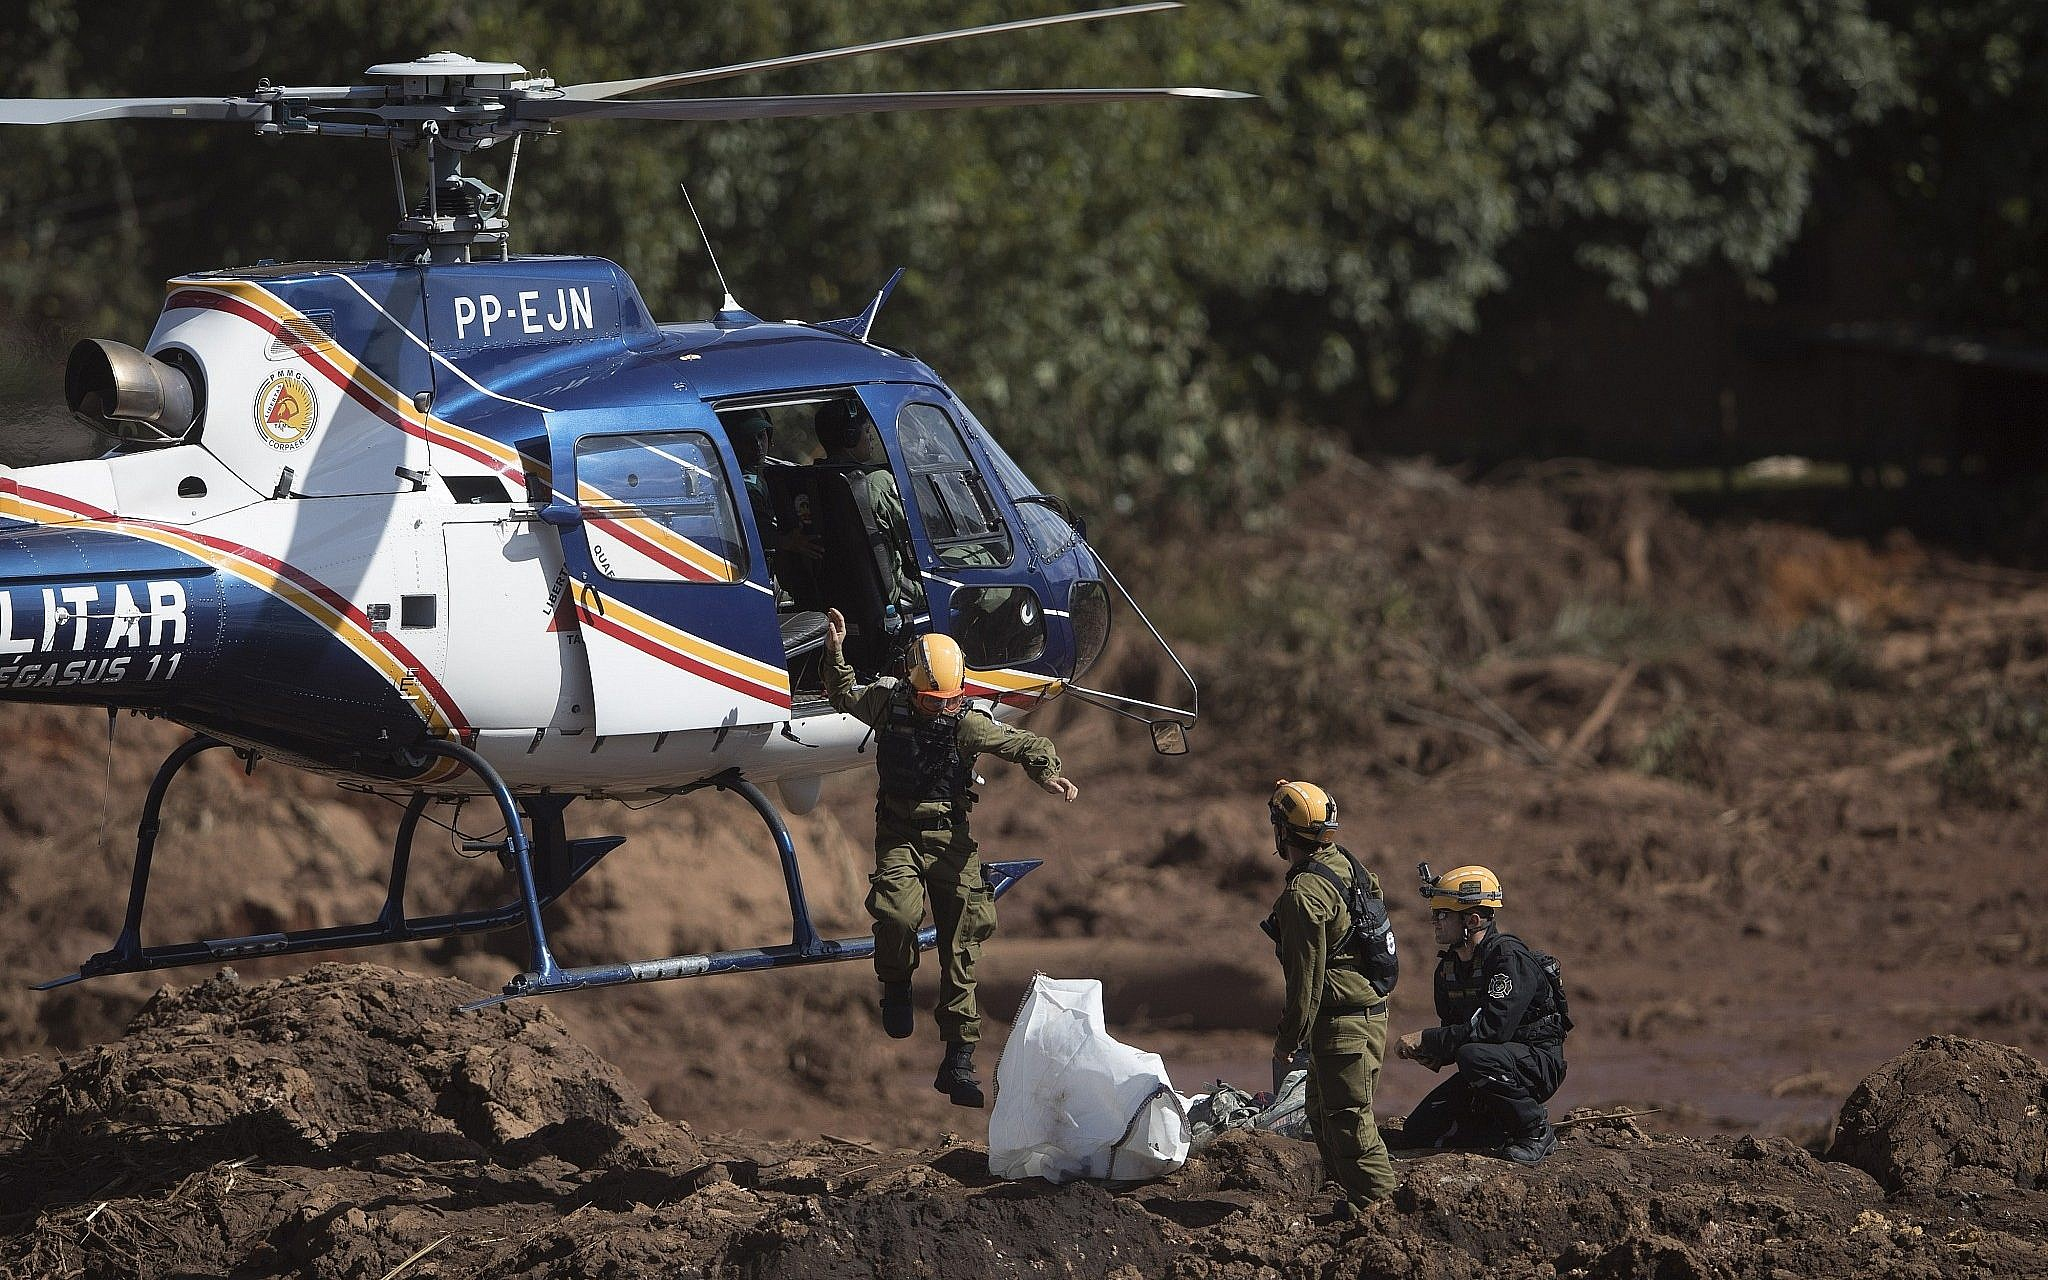 Israeli rescue specialists arrive at a site where a body was found inside a vehicle stuck in the mud days after a dam collapse in Brumadinho Brazil